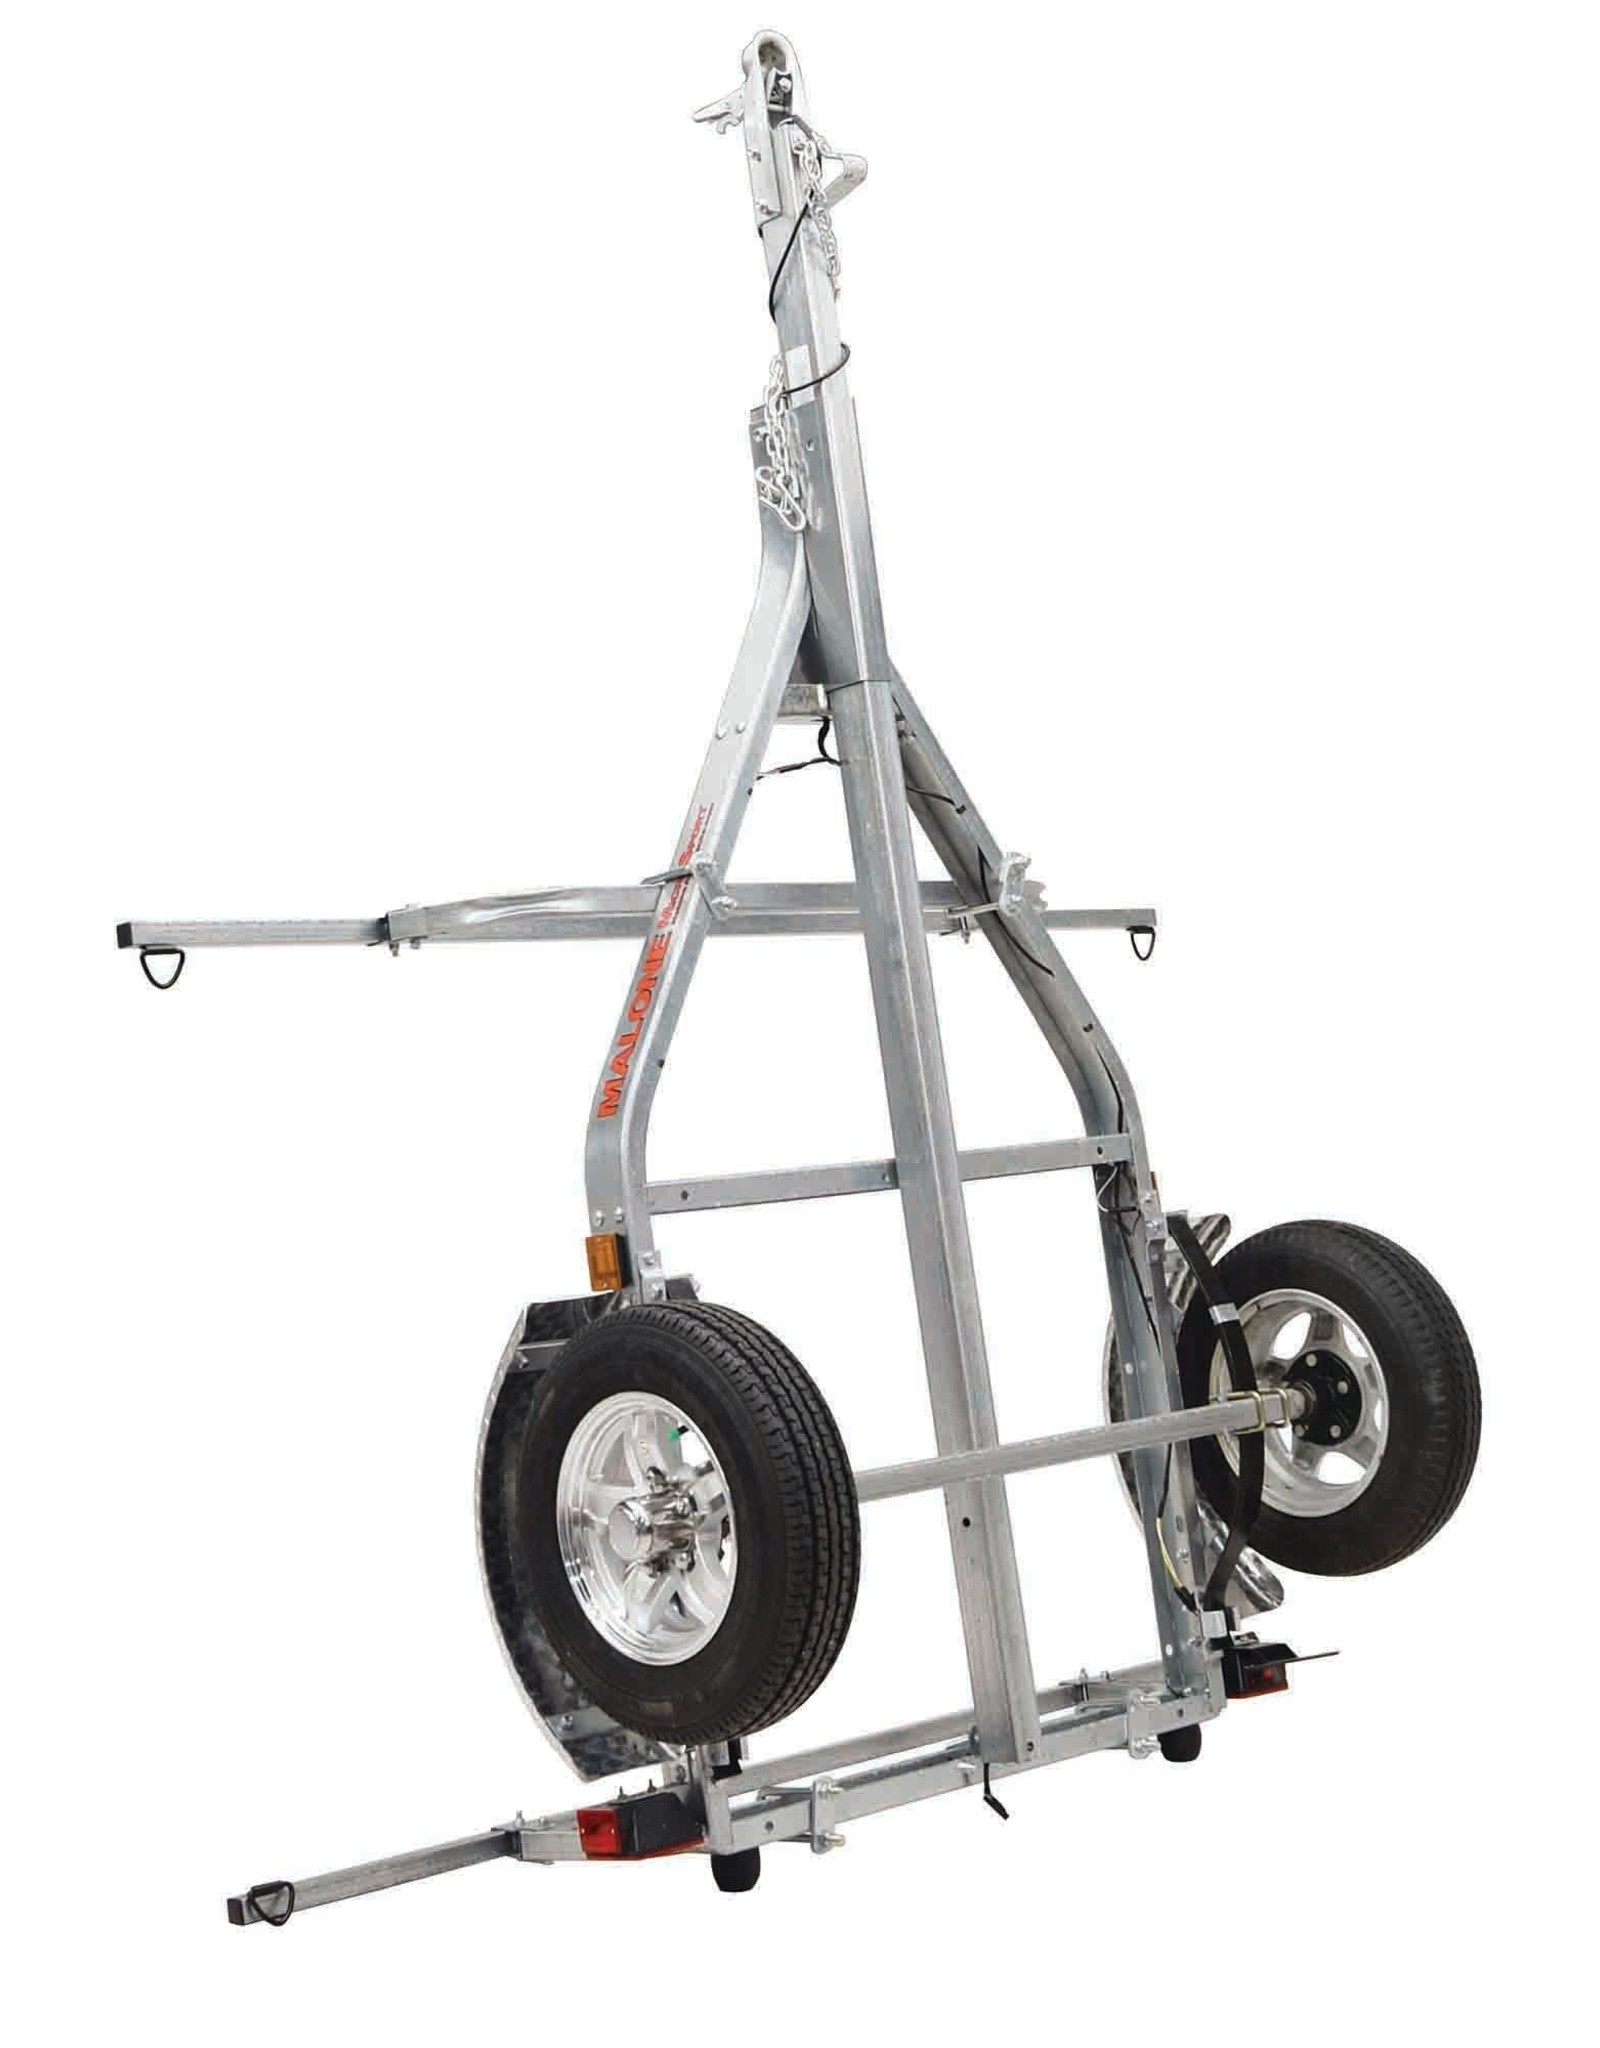 Malone Auto Rack Malone MicroSport™XT Trailer with Aluminum Wheels and Retractable Tongue Kit